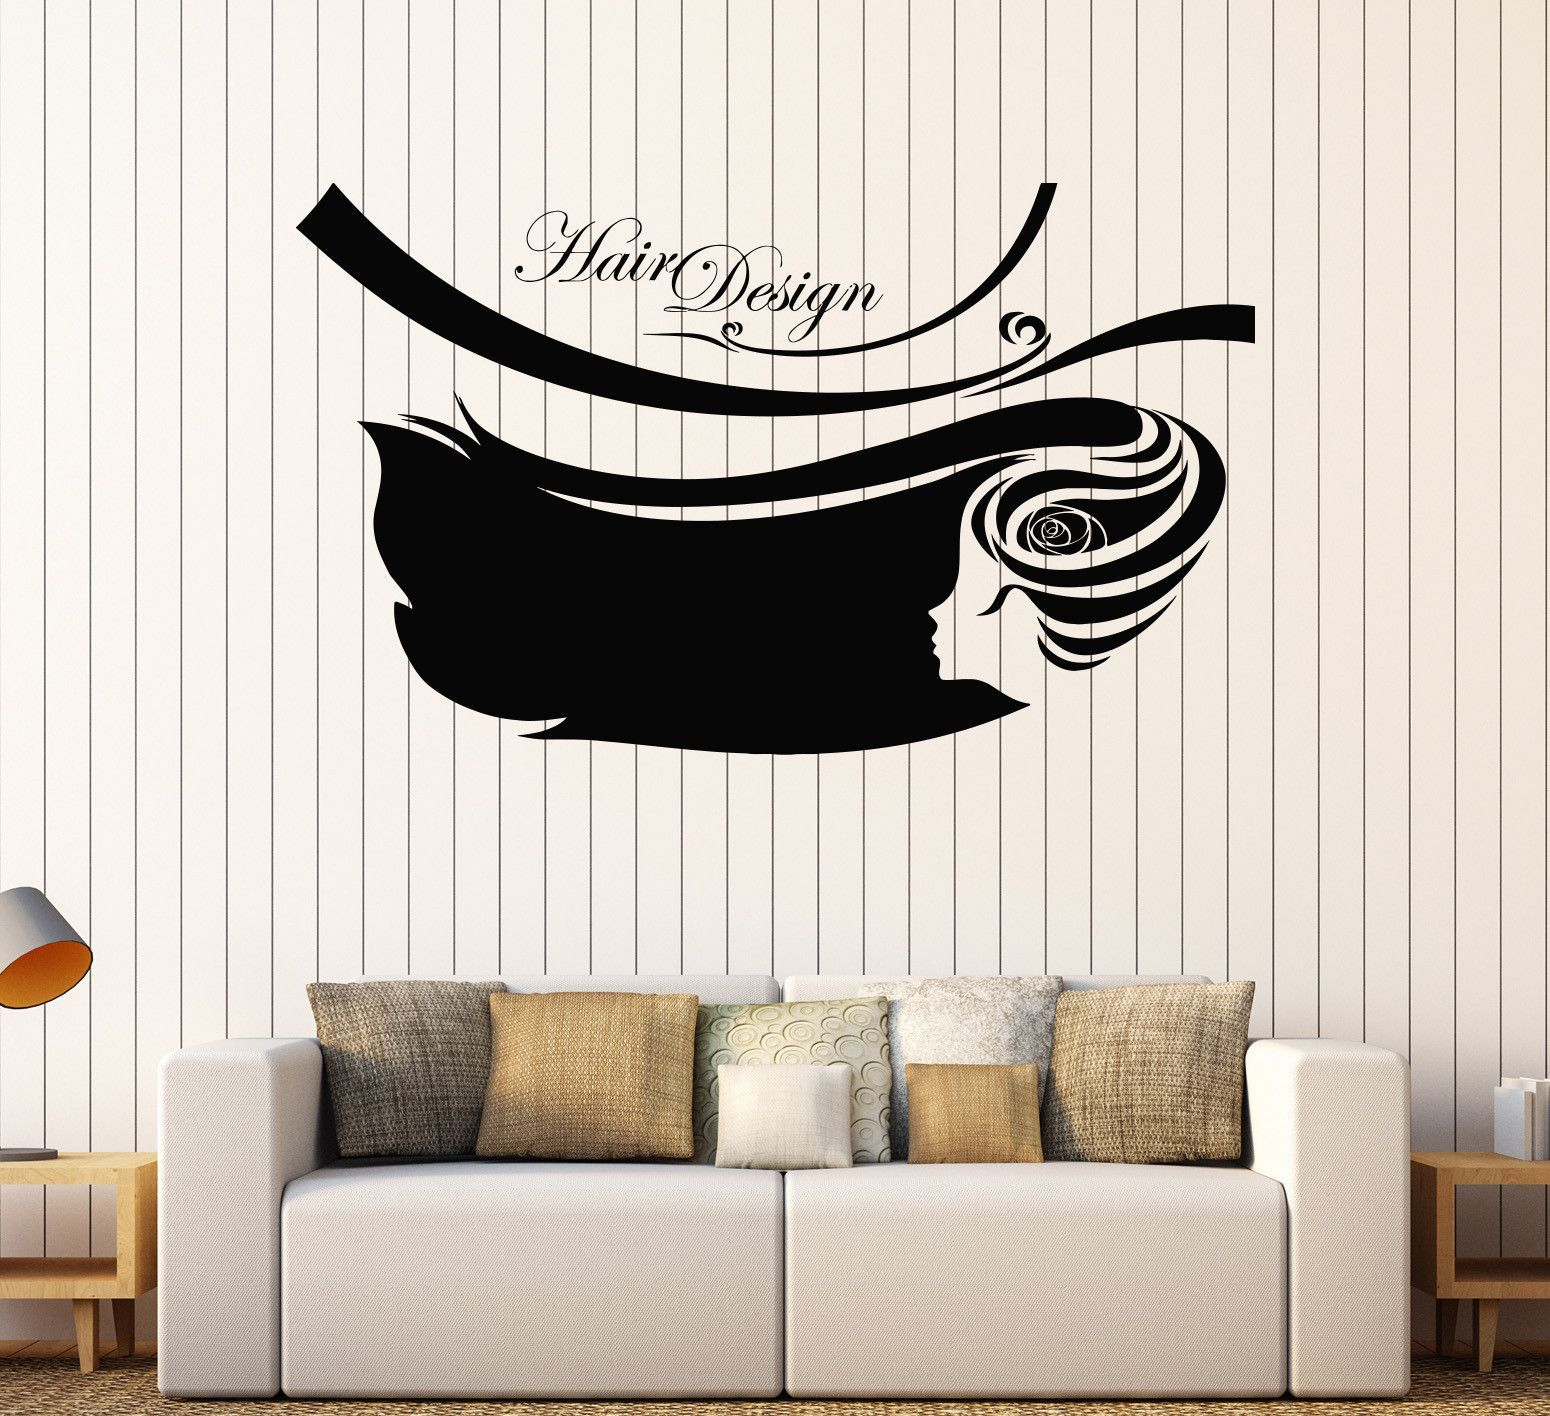 Vinyl Wall Decal Hair Design Beauty Salon Barbershop Hairdresser - Custom vinyl wall decals for hair salonvinyl wall decal hair salon stylist hairdresser barber shop